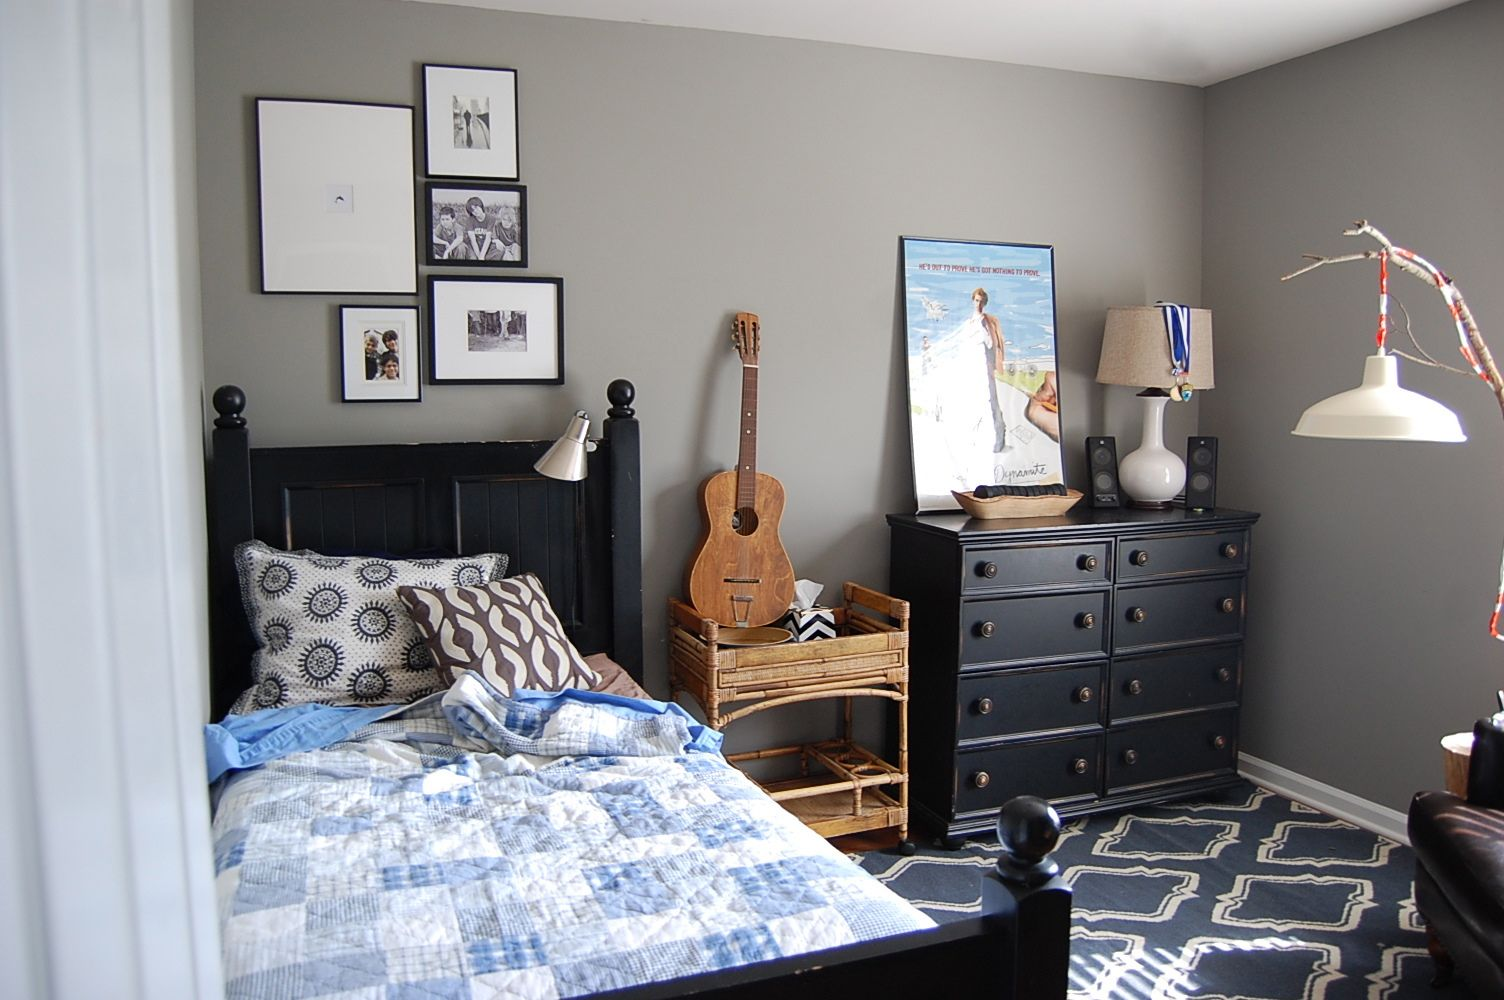 Bedroom Room Designs For Teenage Boys Amazing Design Boys: teenage bedroom wall designs